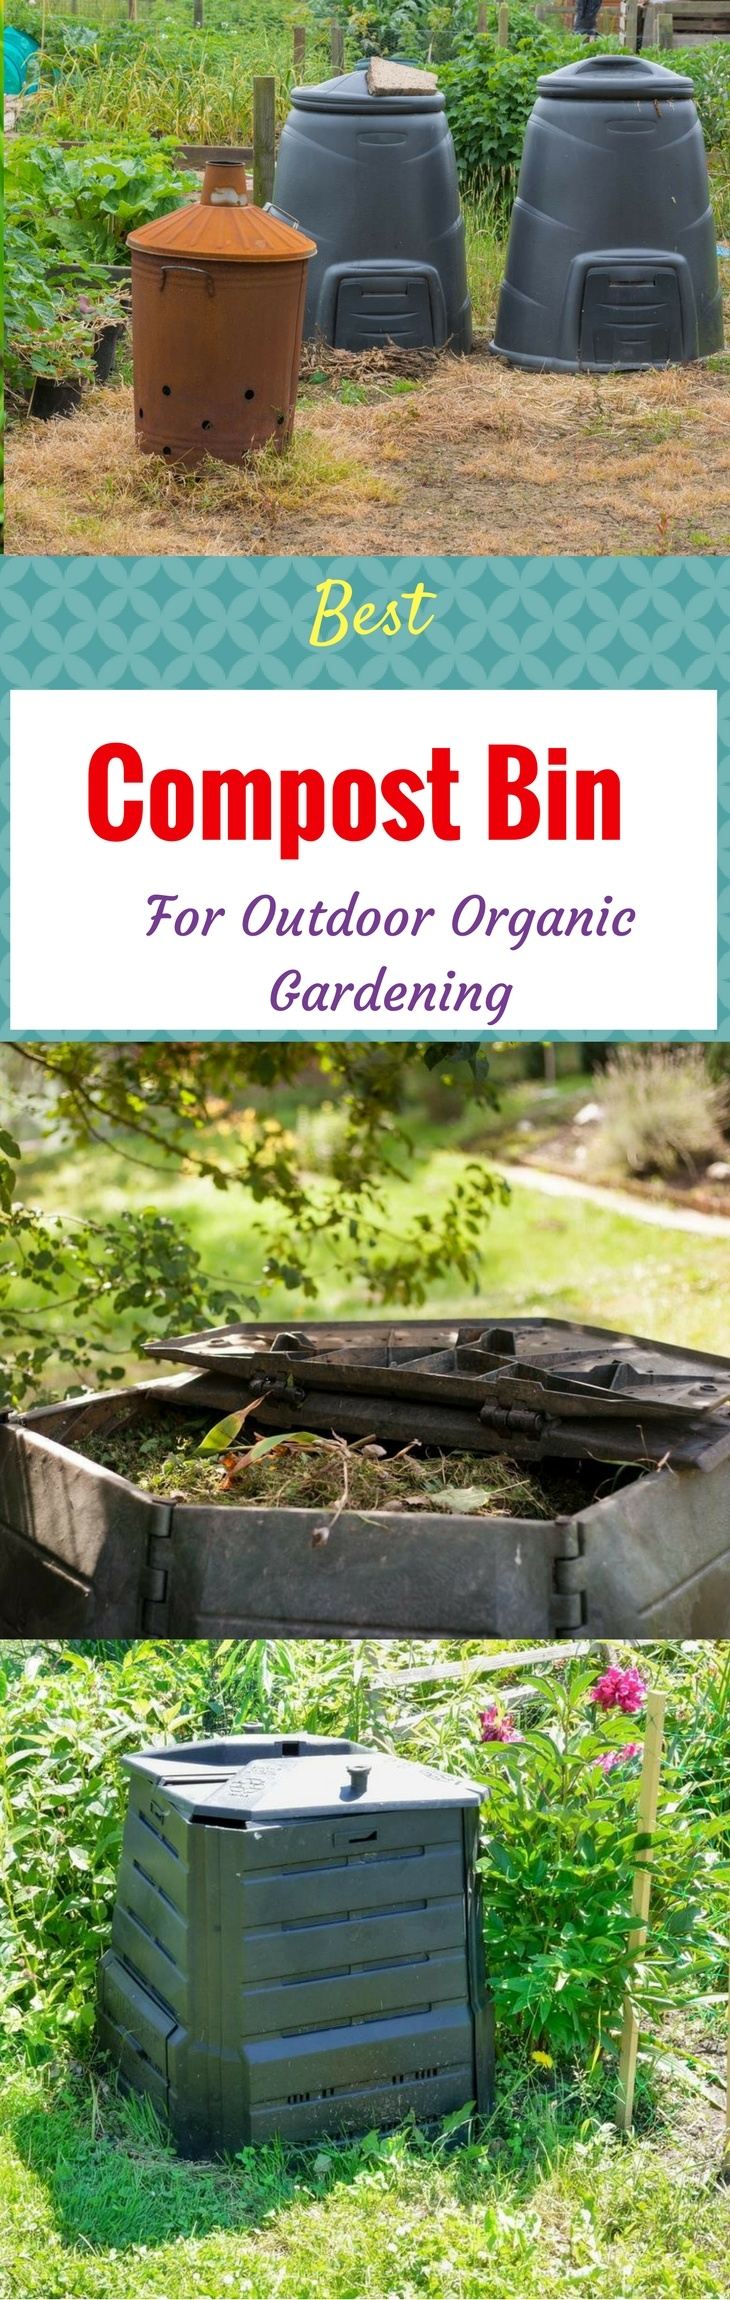 Best Compost Bin for Outdoor Organic Gardening pin it